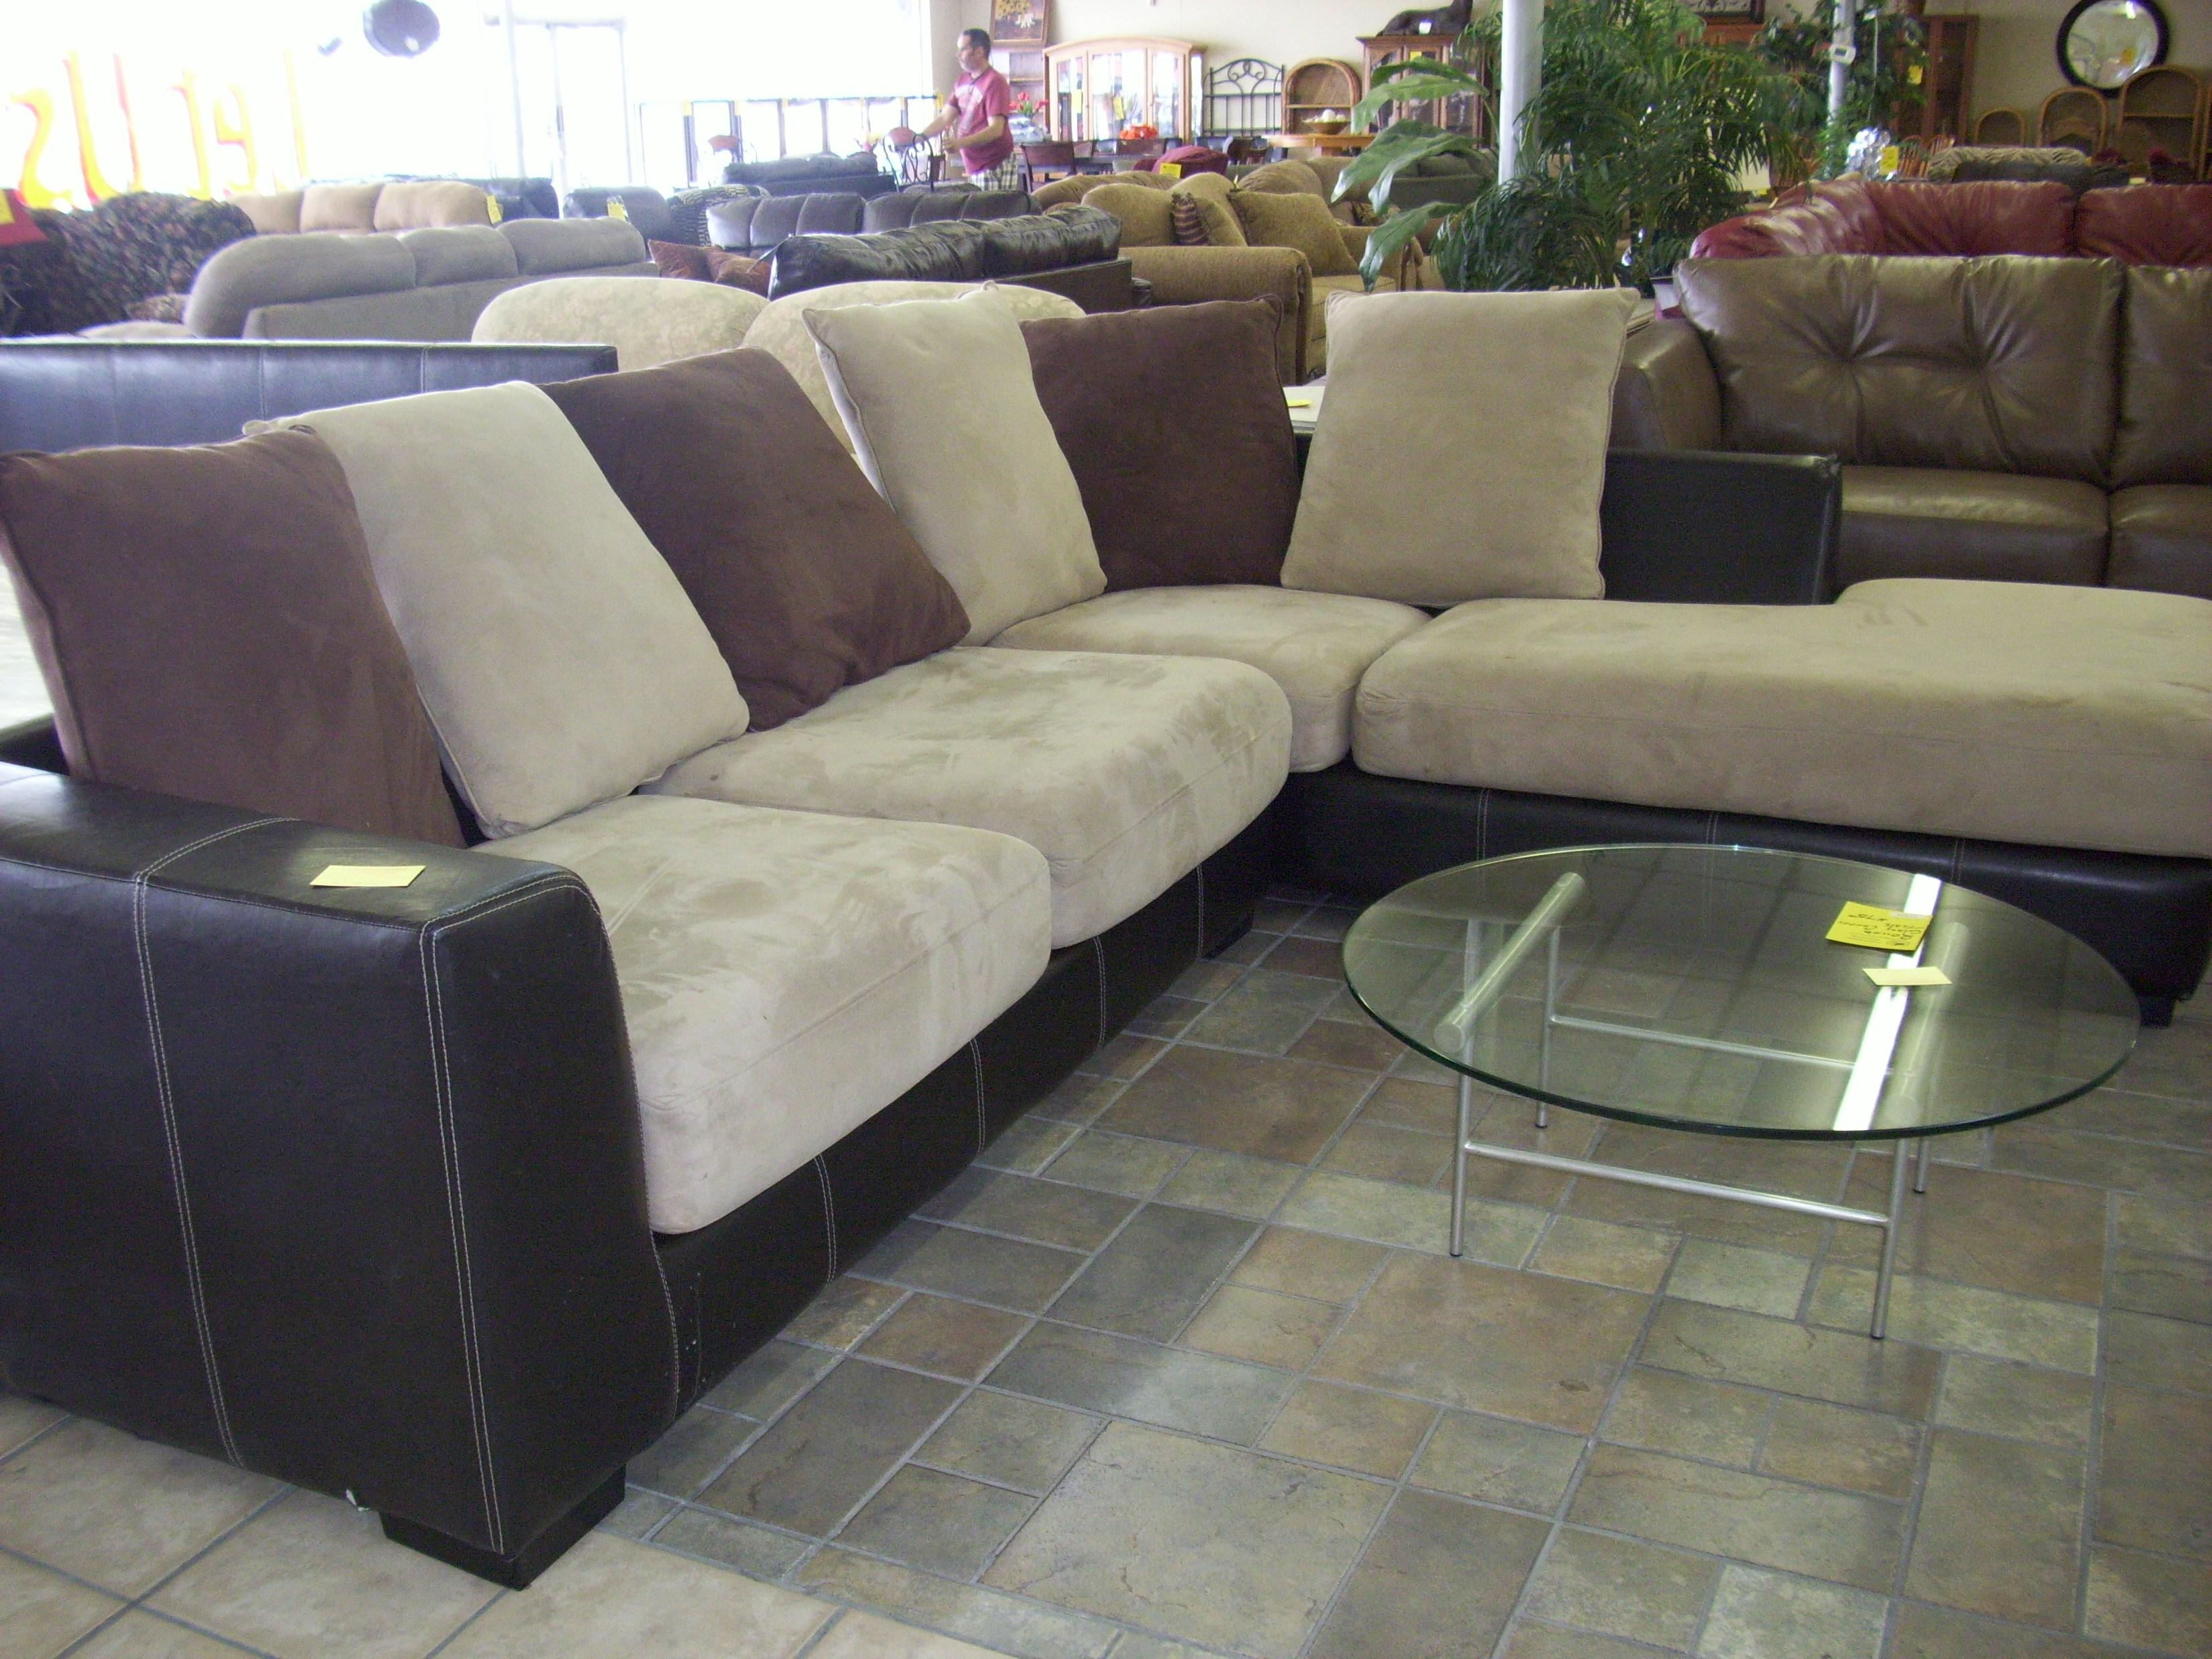 Furniture: Glamour Costco Sofa Bed To Modernize Your Living Room With Regard To Euro Sofas (View 10 of 20)